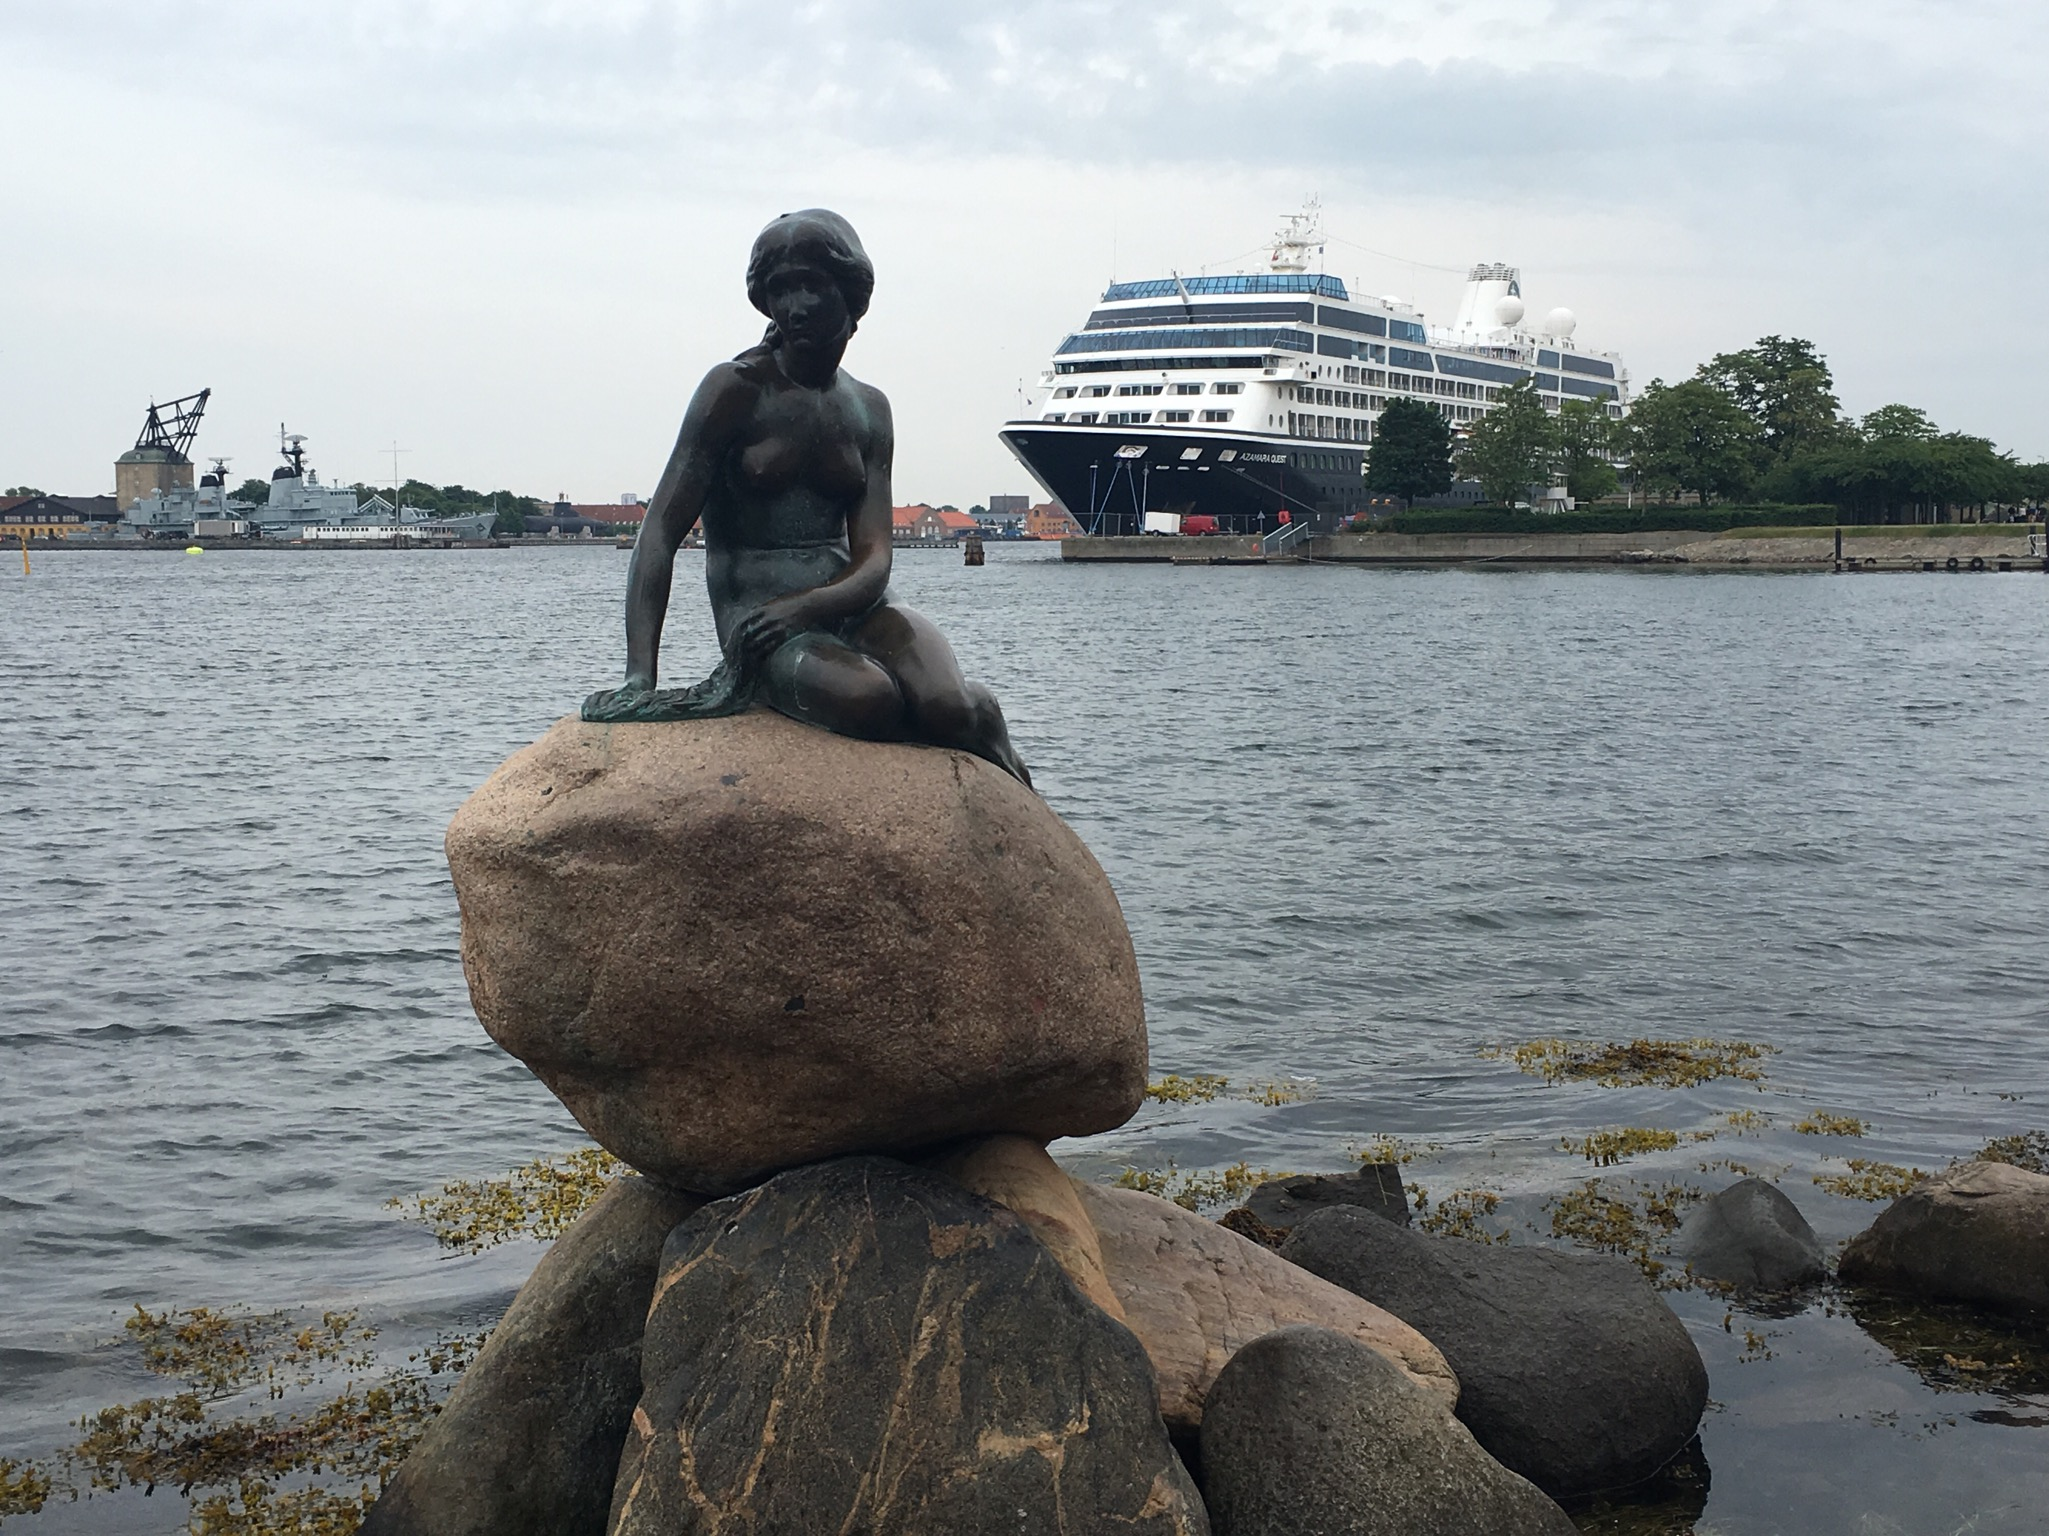 2016 Baltic Sea PerryGolf Cruise - Copenhagen - Another iconic location shot for Azamara Quest...this time with Copenhagen's famous little mermaid - PerryGolf.com